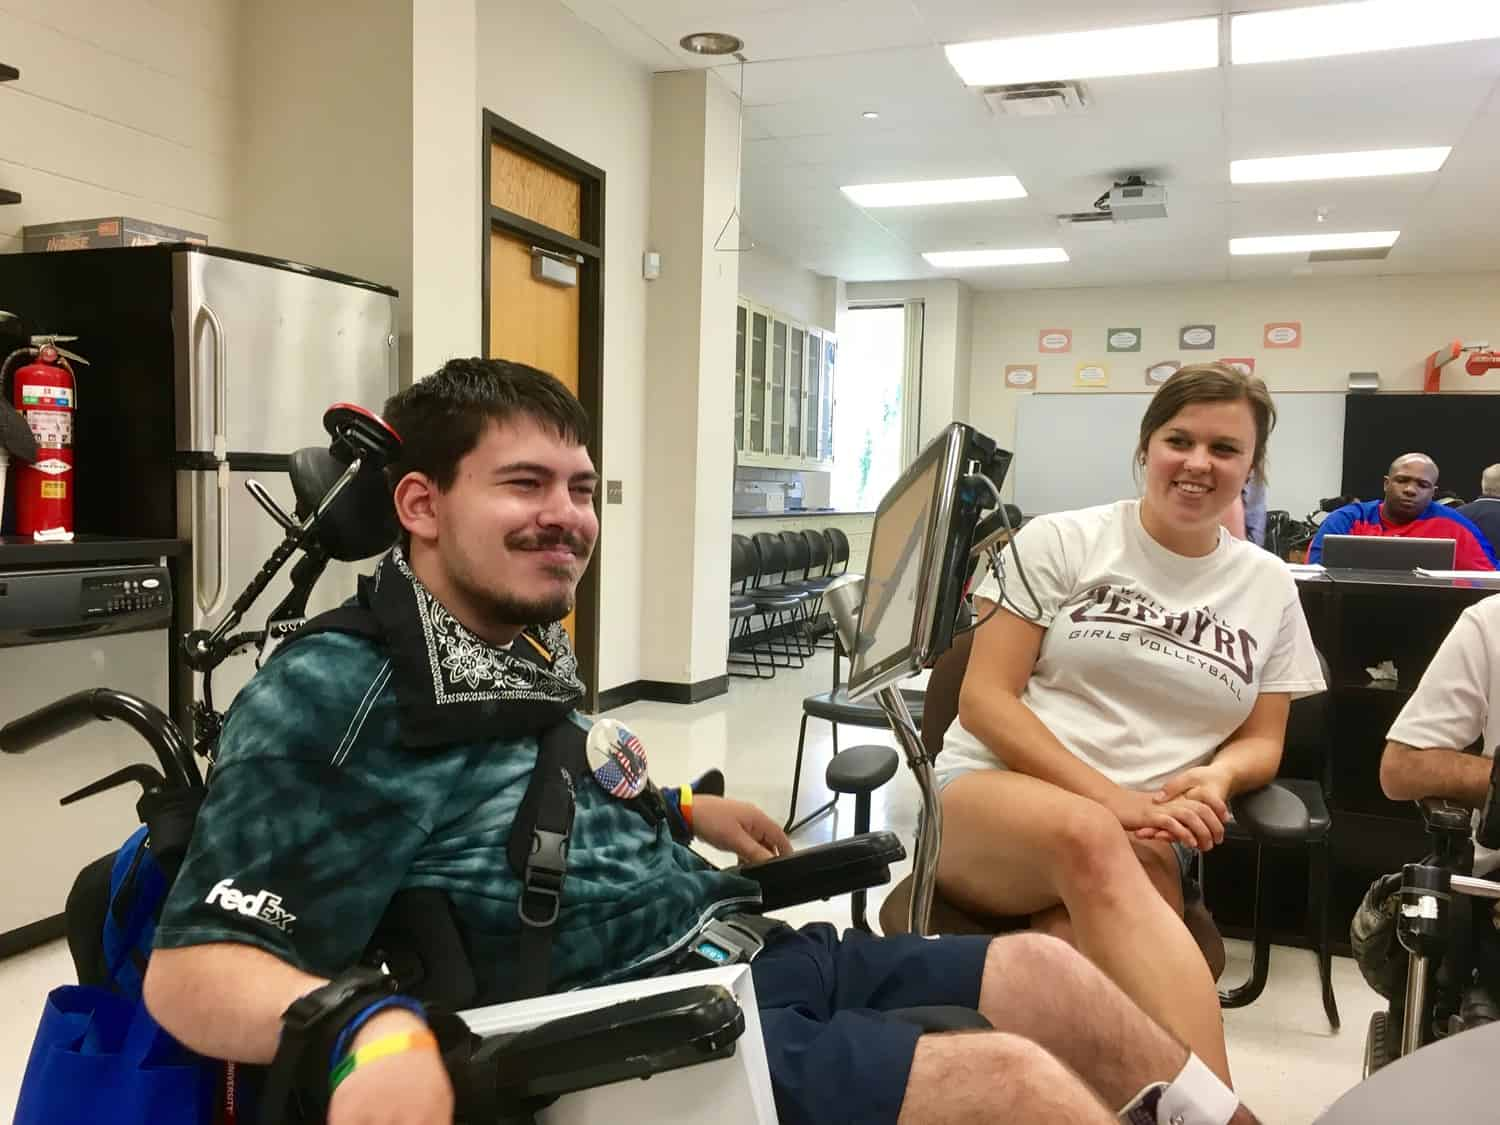 Image of young man with AAC device and his communication partner.